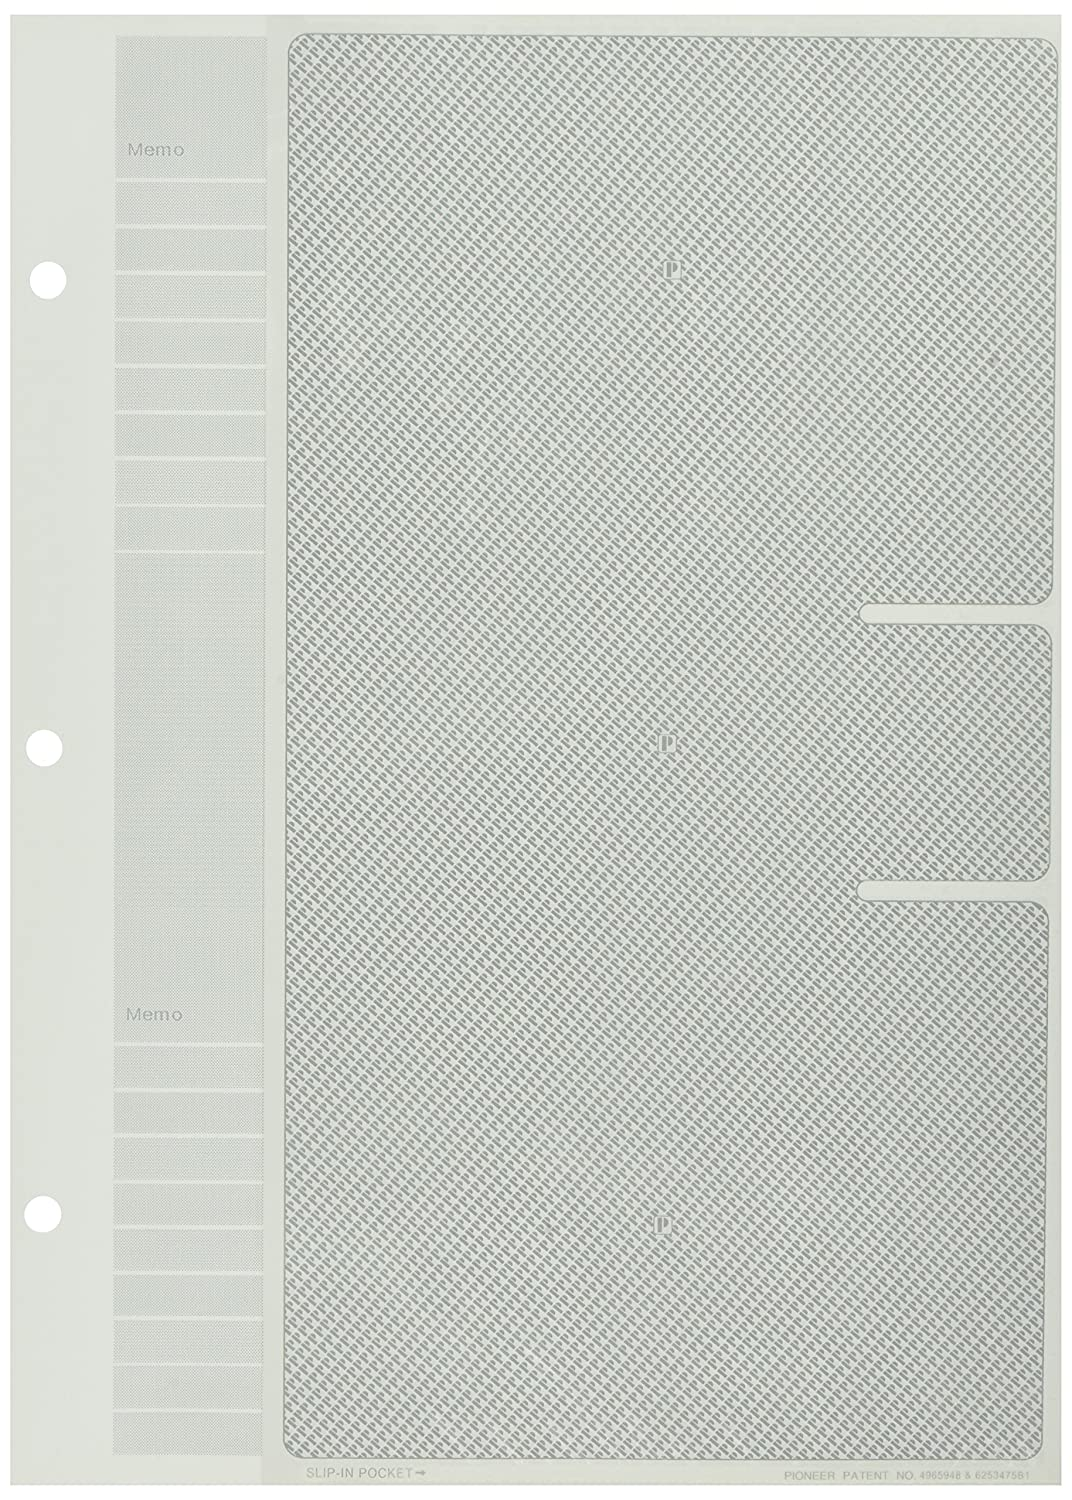 Pioneer Photo Albums 30 Pocket Refill for APS-247 Series Photo Albums, 5 by 7-Inch 57-APS PI57APS